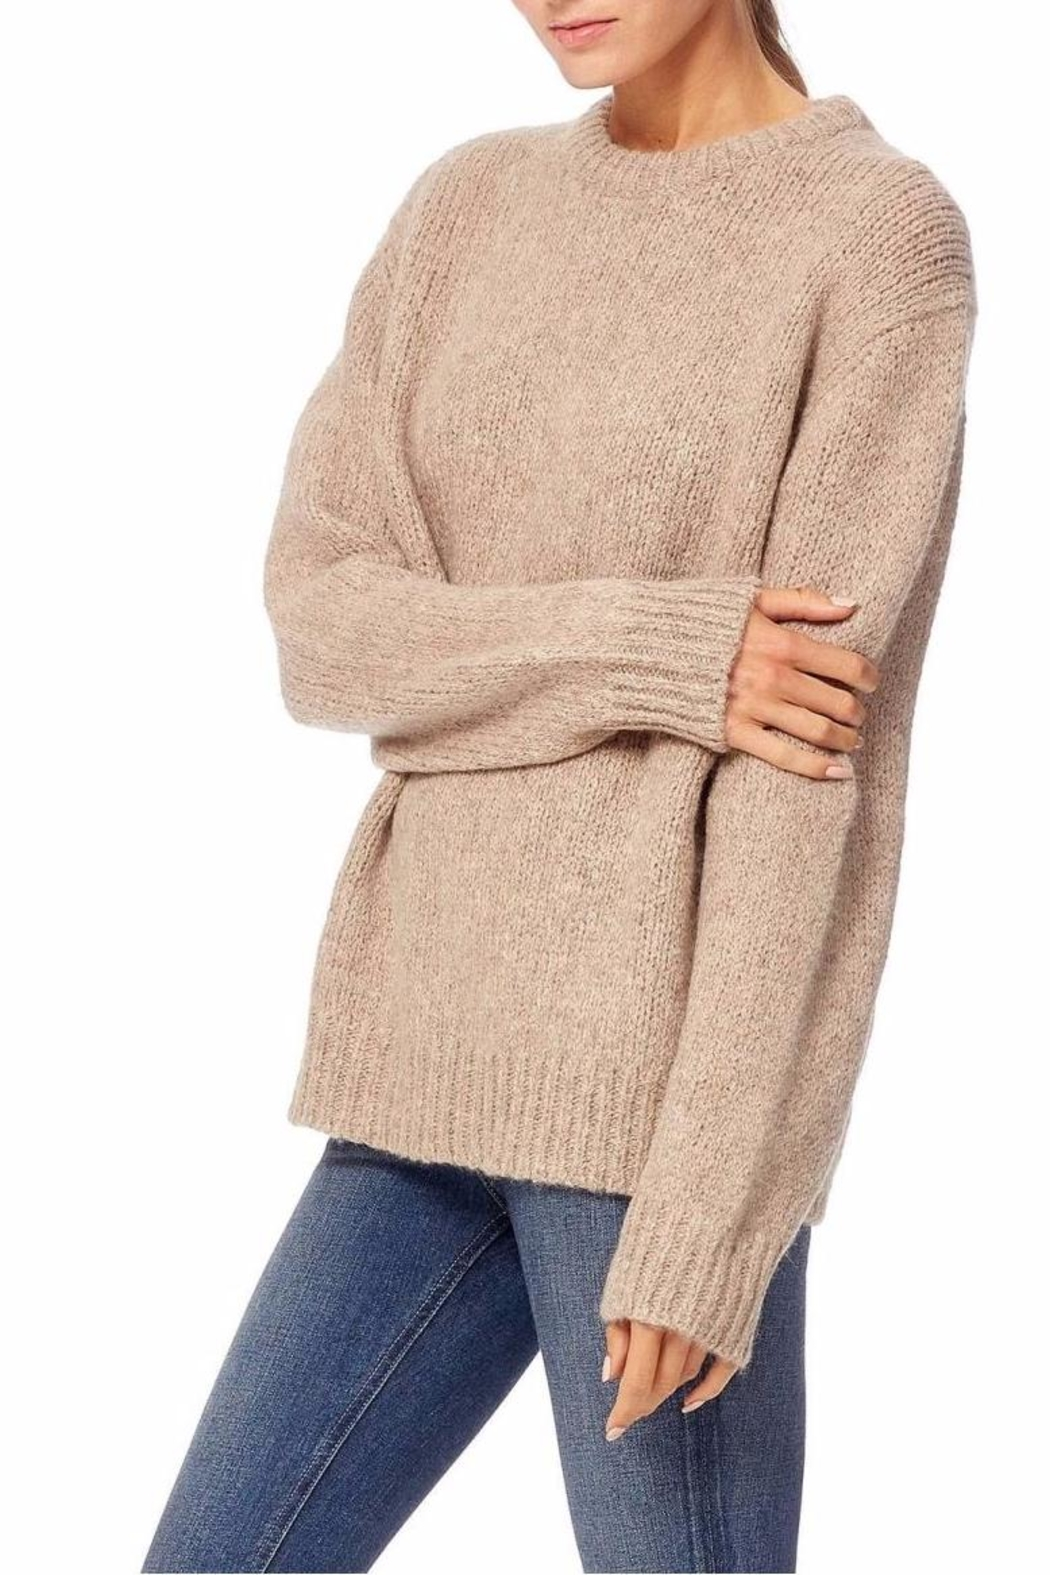 360 Cashmere Briseis Boyfriend Sweater from Los Angeles by Tags ...